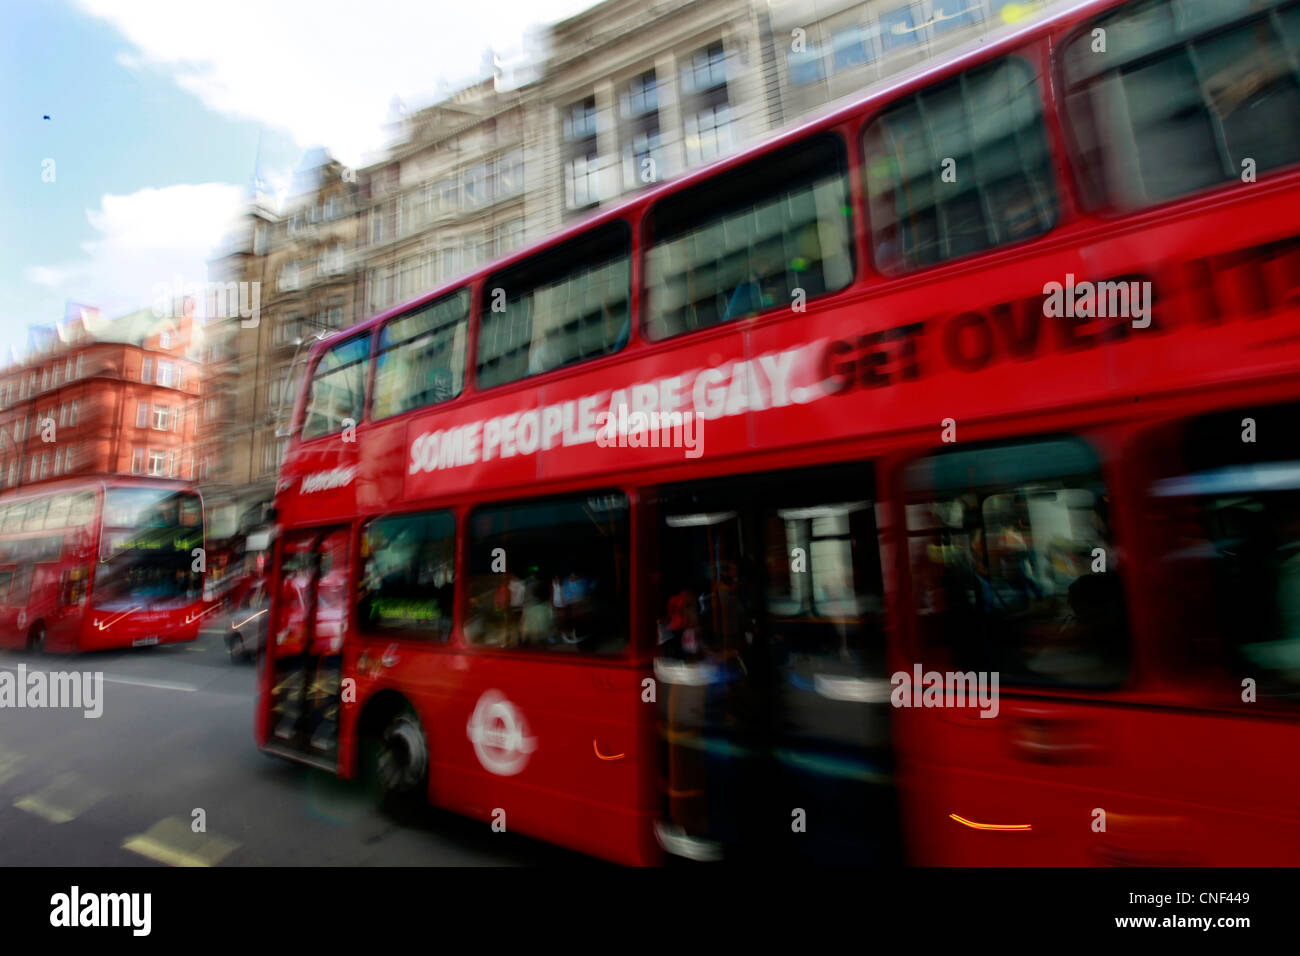 A London bus carries adverts from Stonewall promoting equal marriage with the slogan 'Some people are gay. Get - Stock Image